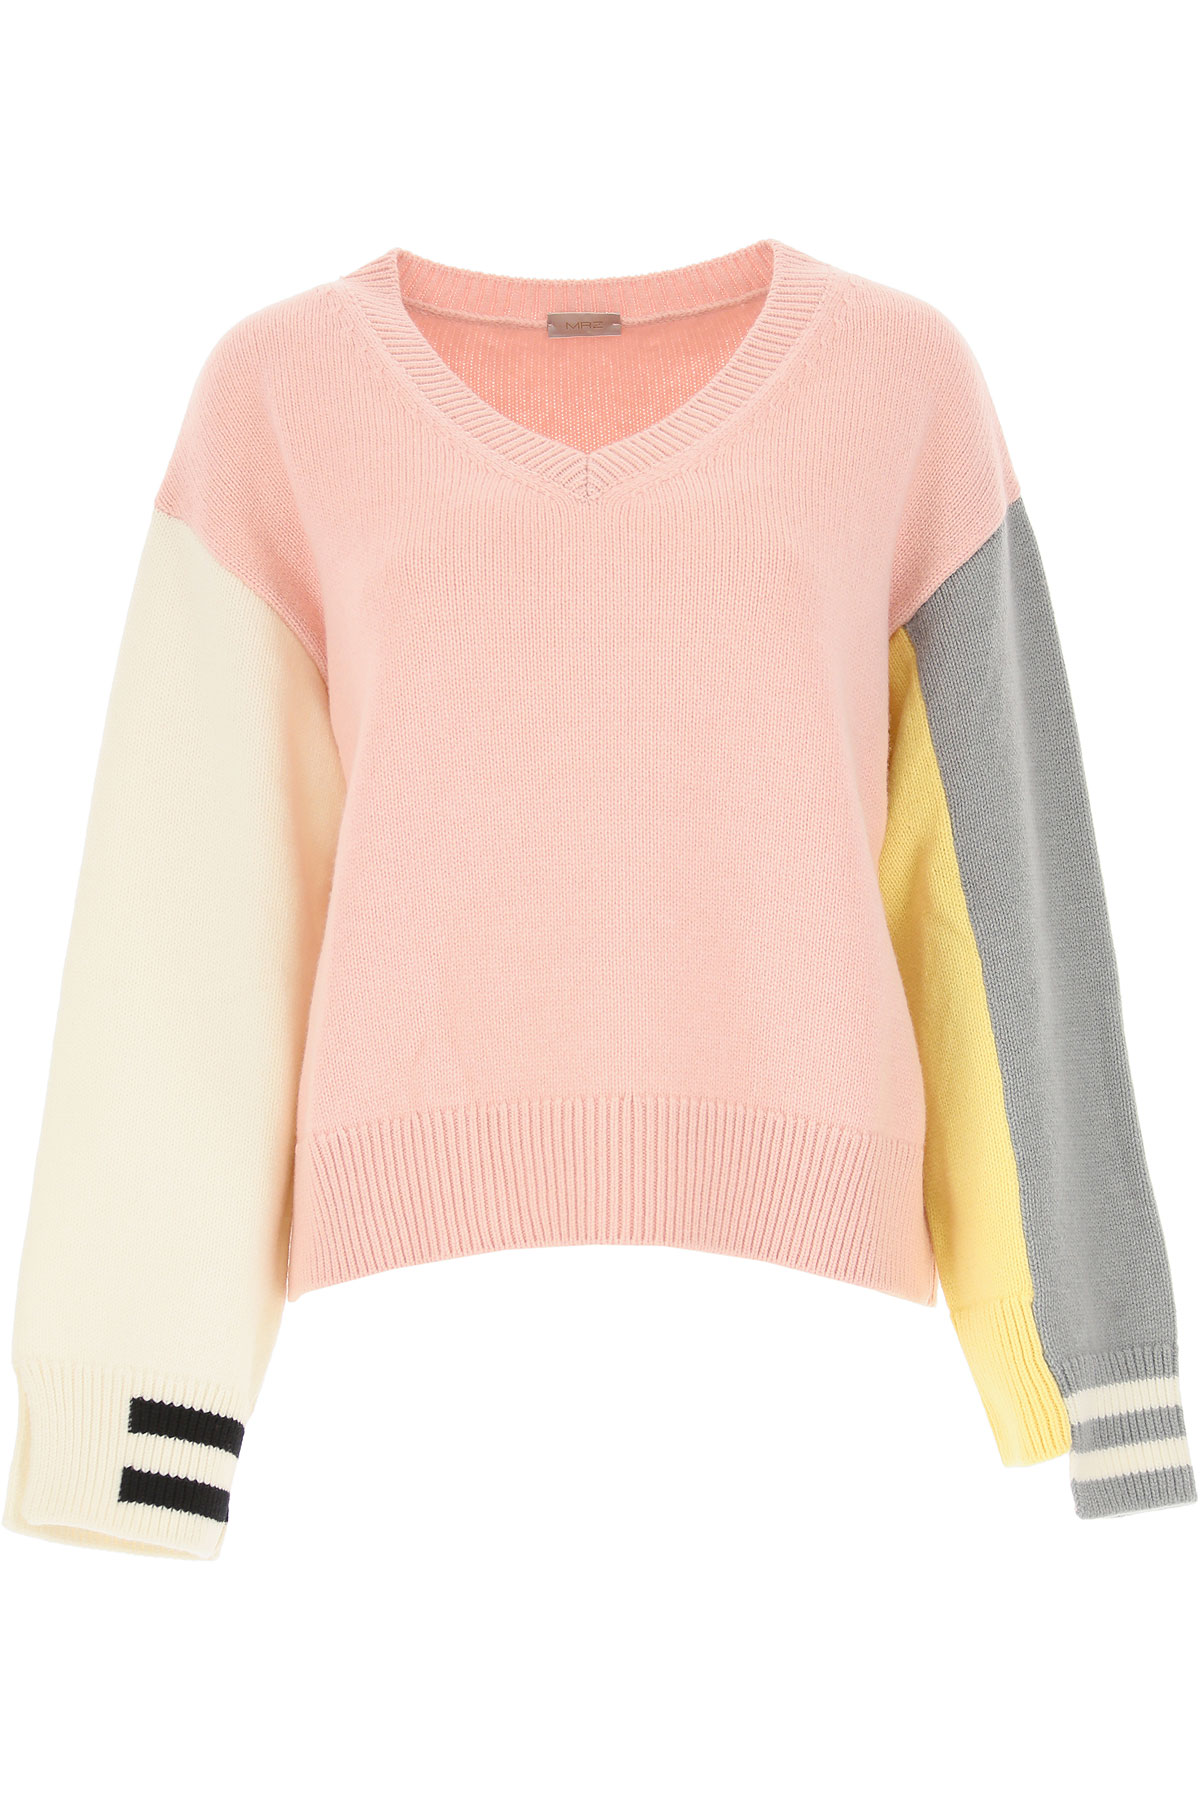 Image of MRZ Sweater for Women Jumper, Antique Rose, Wool, 2017, 2 4 6